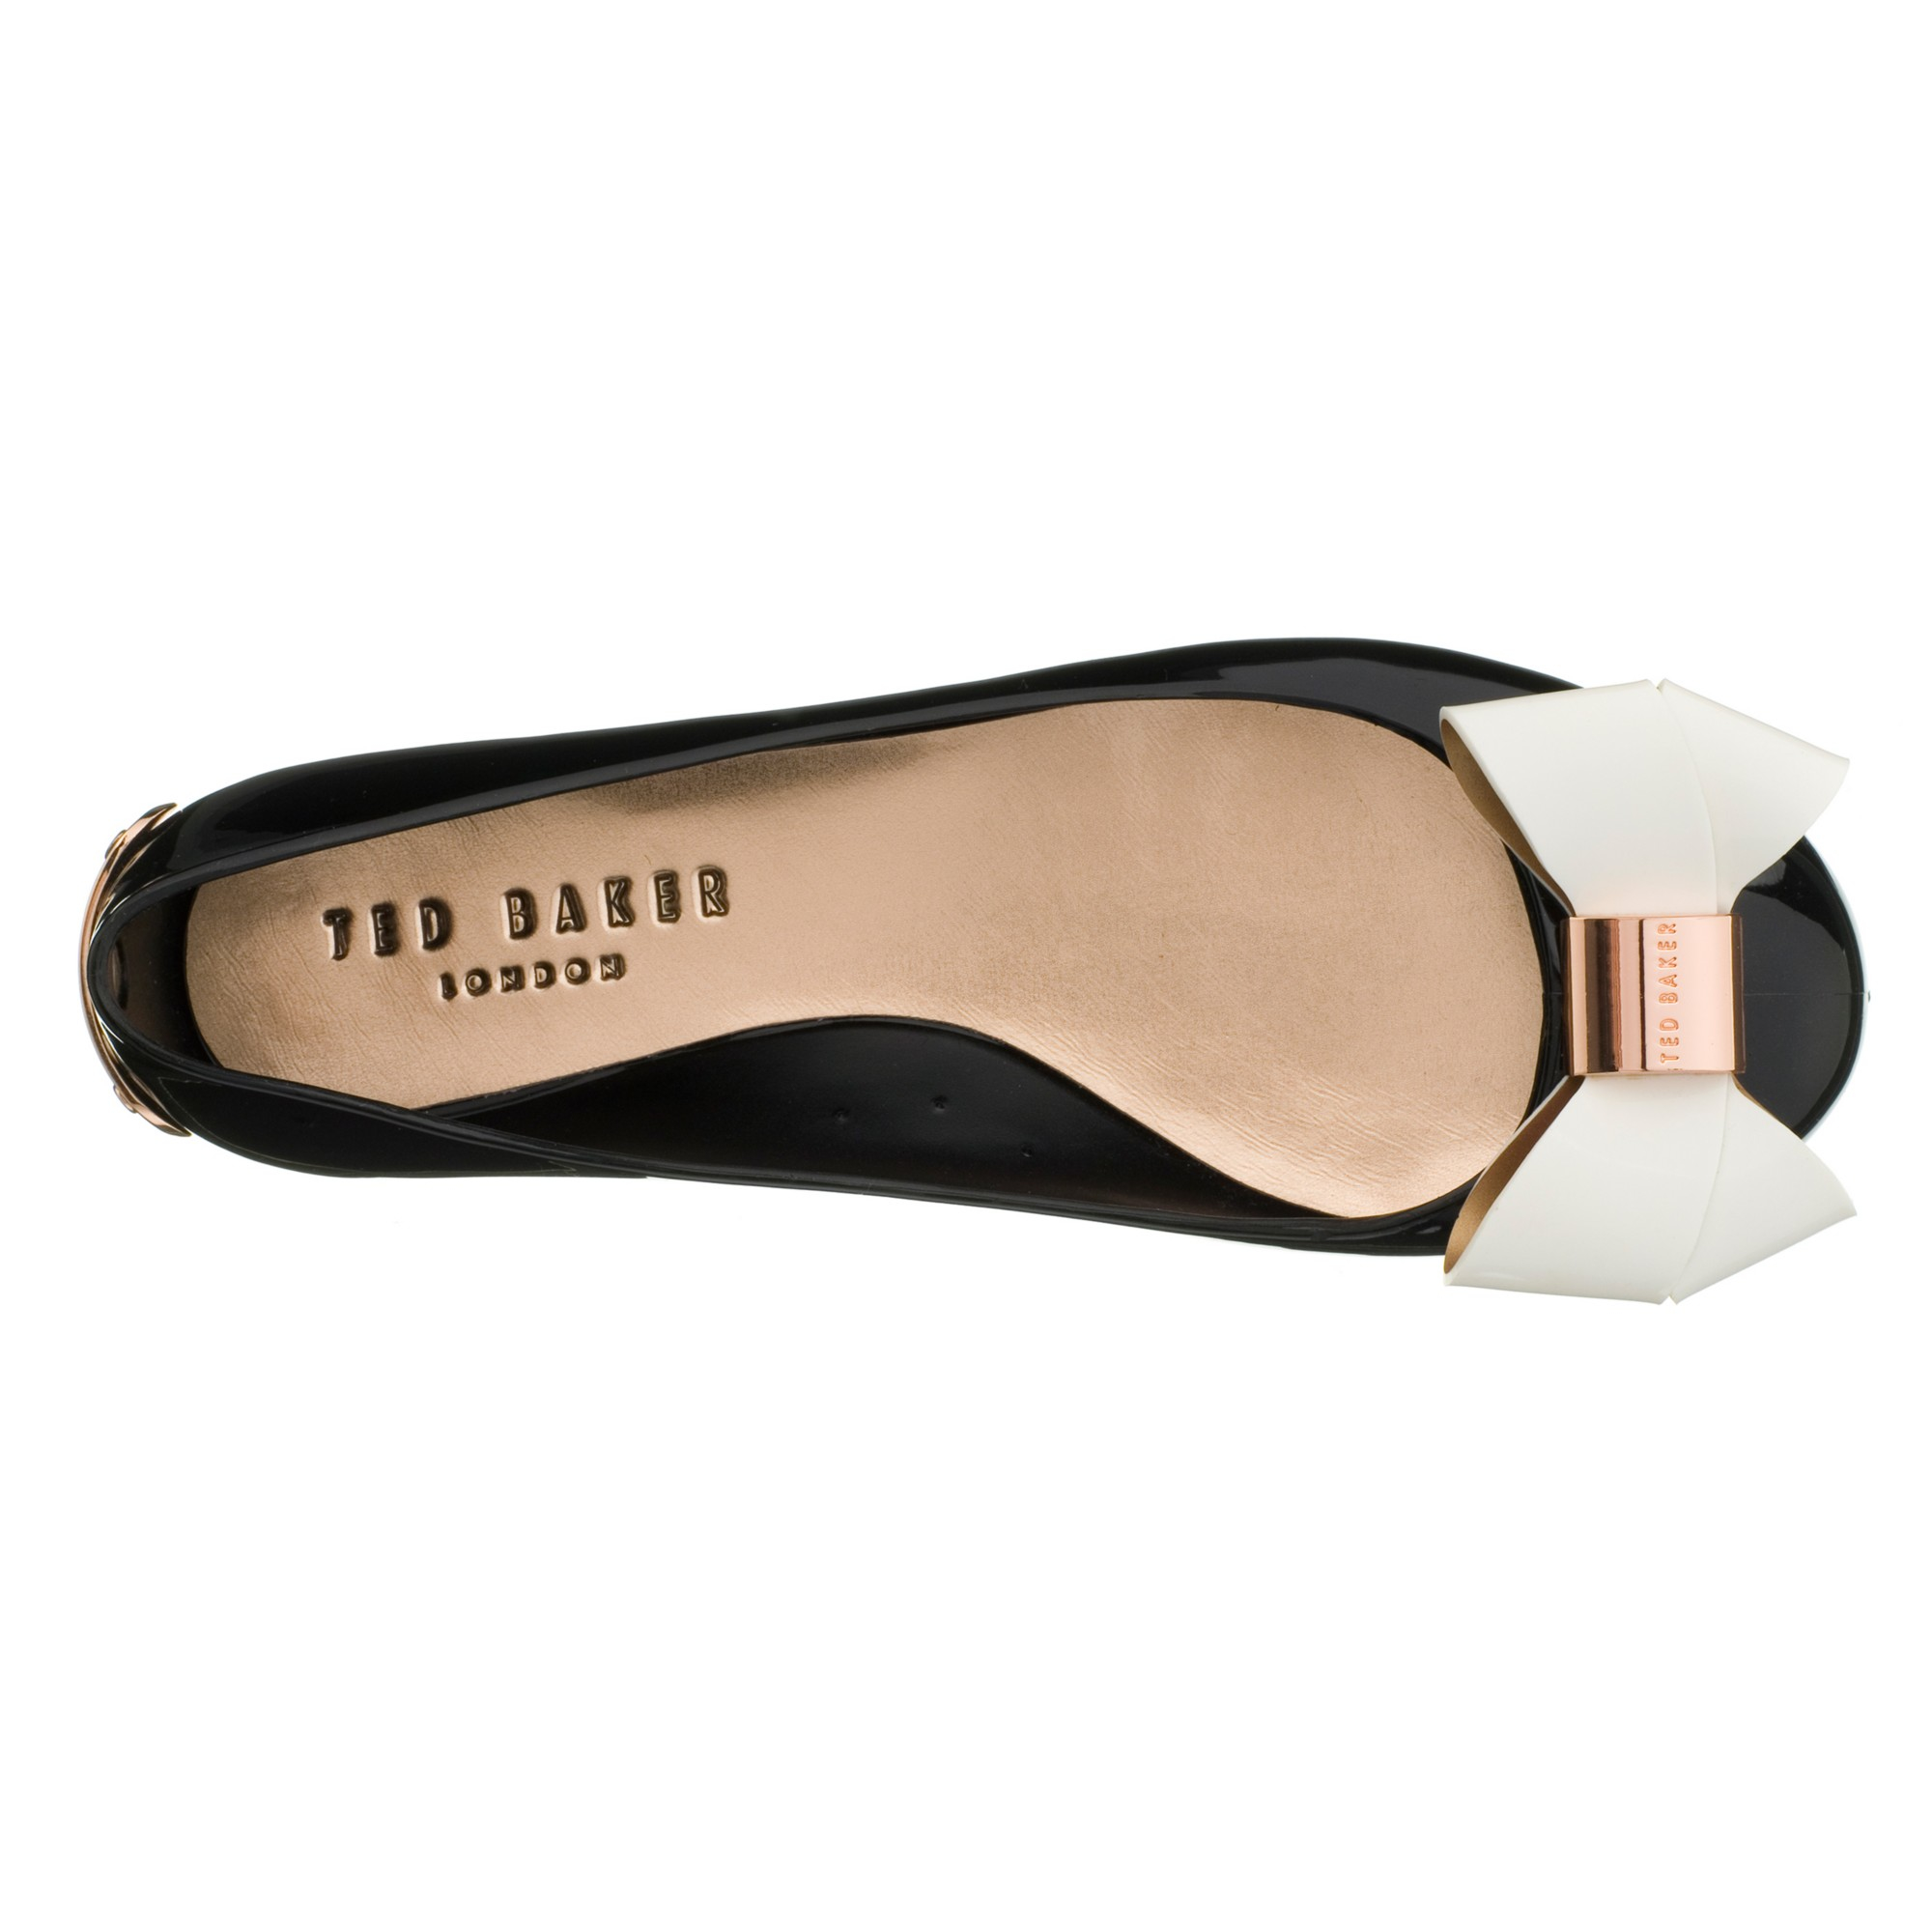 f3ebad38aa01 Ted Baker Faiyte Large Bow Jelly Flat Pumps in Black - Lyst